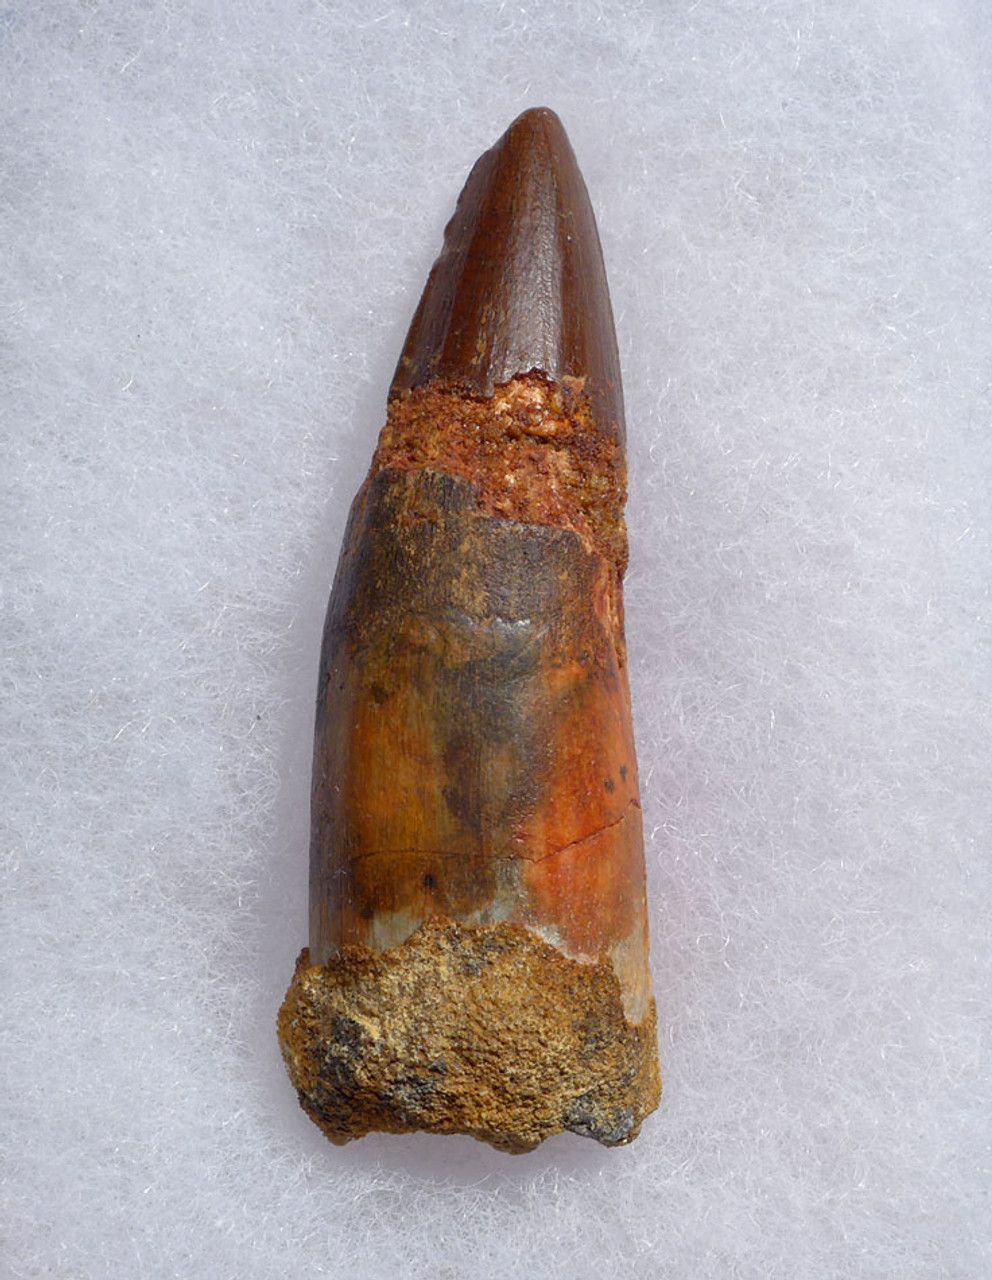 INEXPENSIVE ROBUST 2.5 INCH SPINOSAURUS DINOSAUR FOSSIL TOOTH *DT5-471